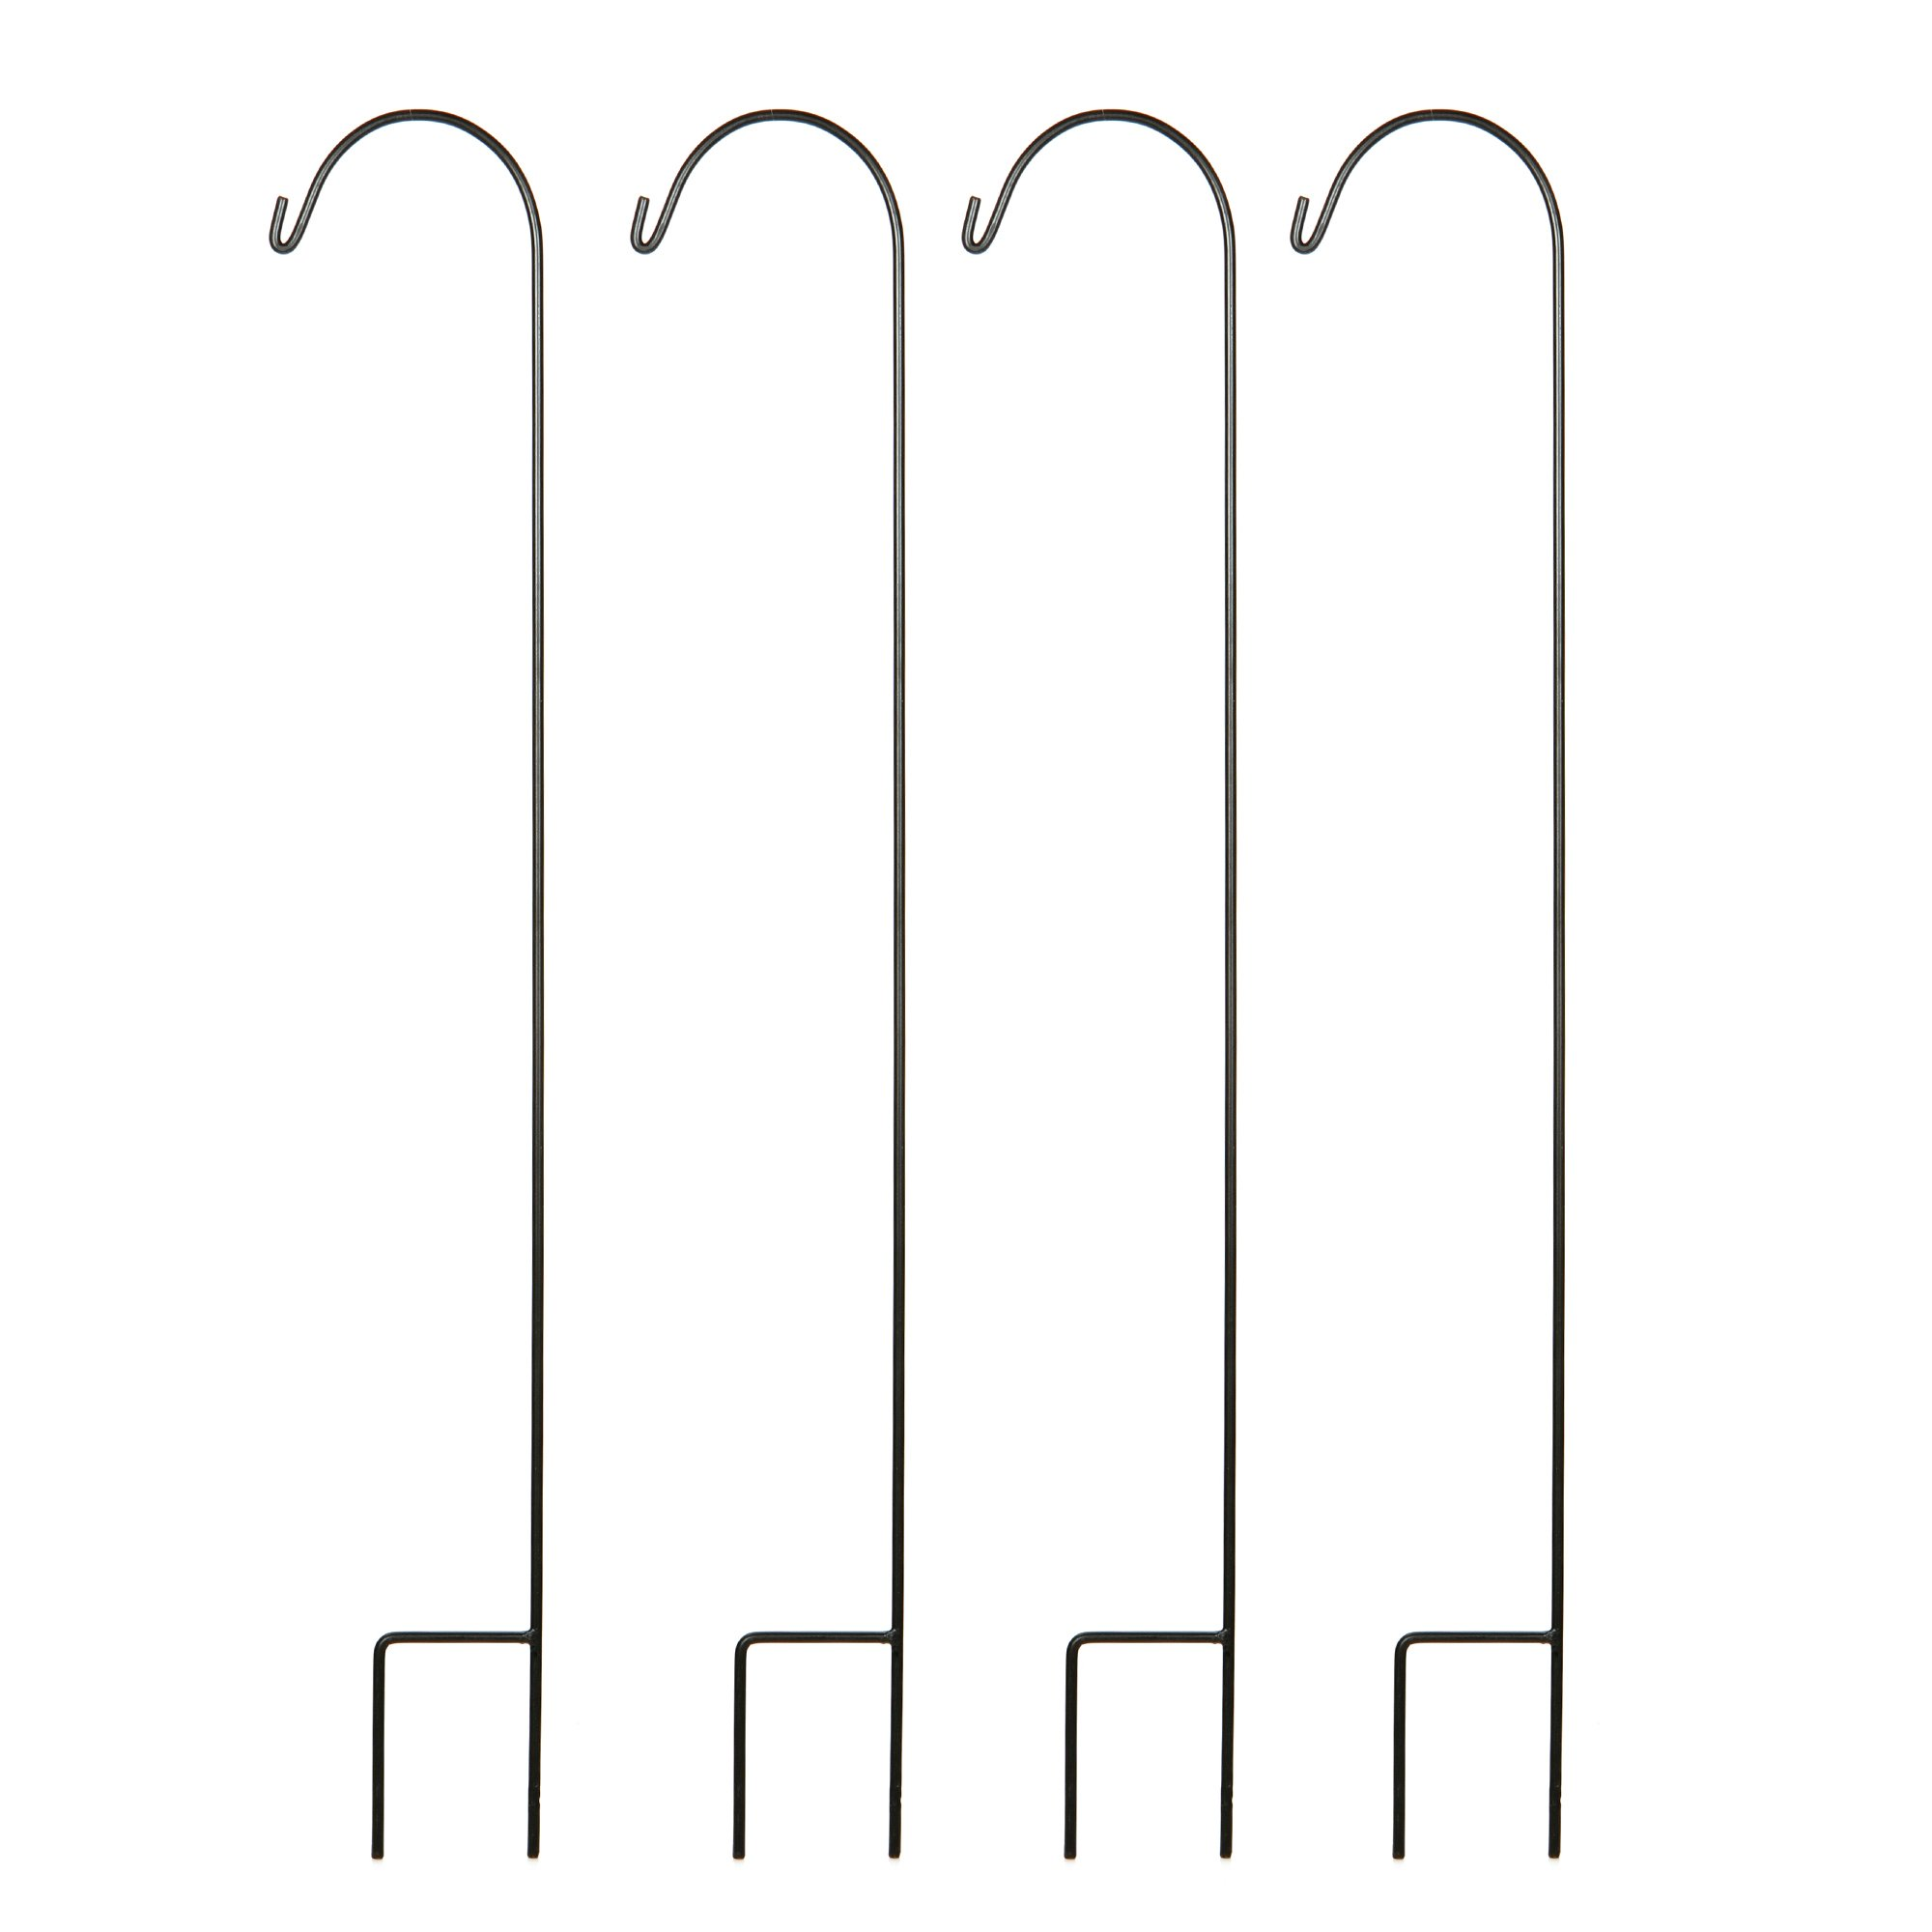 Hosley's Set of 4 Shepherd Hooks- 33'' High. Ideal For Solar LED Lights, Bird Feeders, Mason Jars, Plant Hangers, Lanterns, Garden Stakes. Gift For Weddings, House Warming, Special Events O3 by Hosley